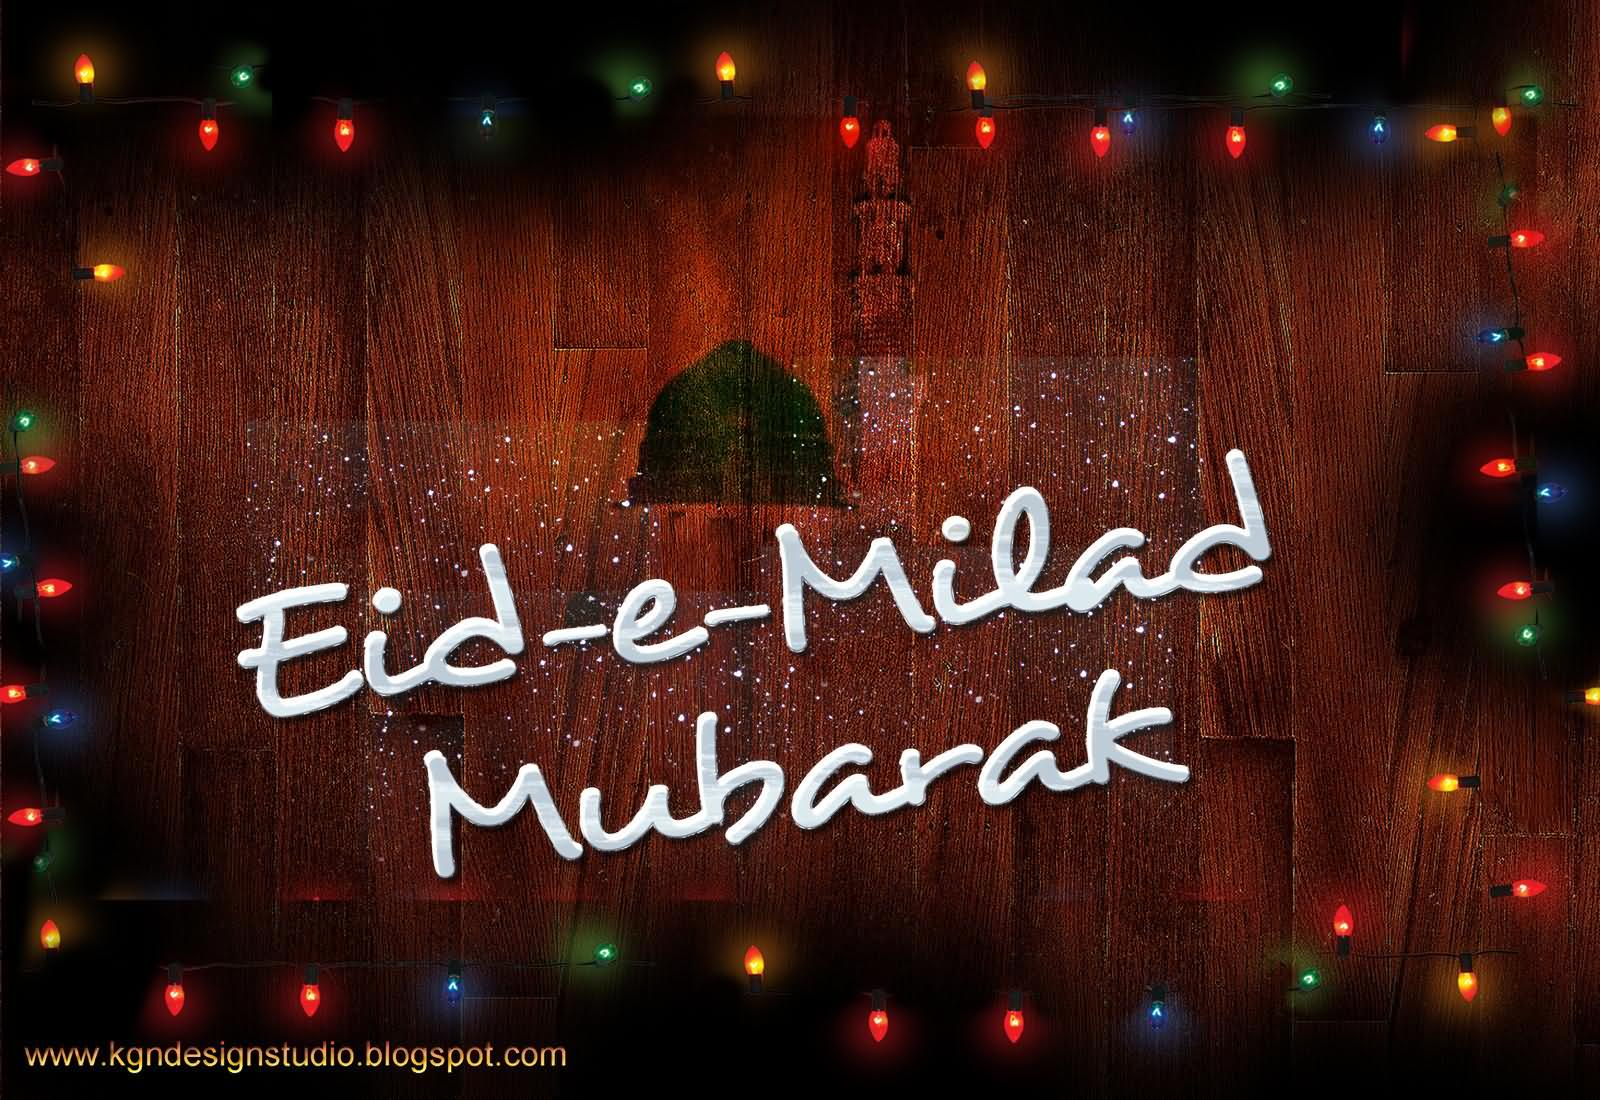 Cool Milad Eid Al-Fitr Greeting - Eid-E-Milad-Mubarak  HD_765986 .jpg